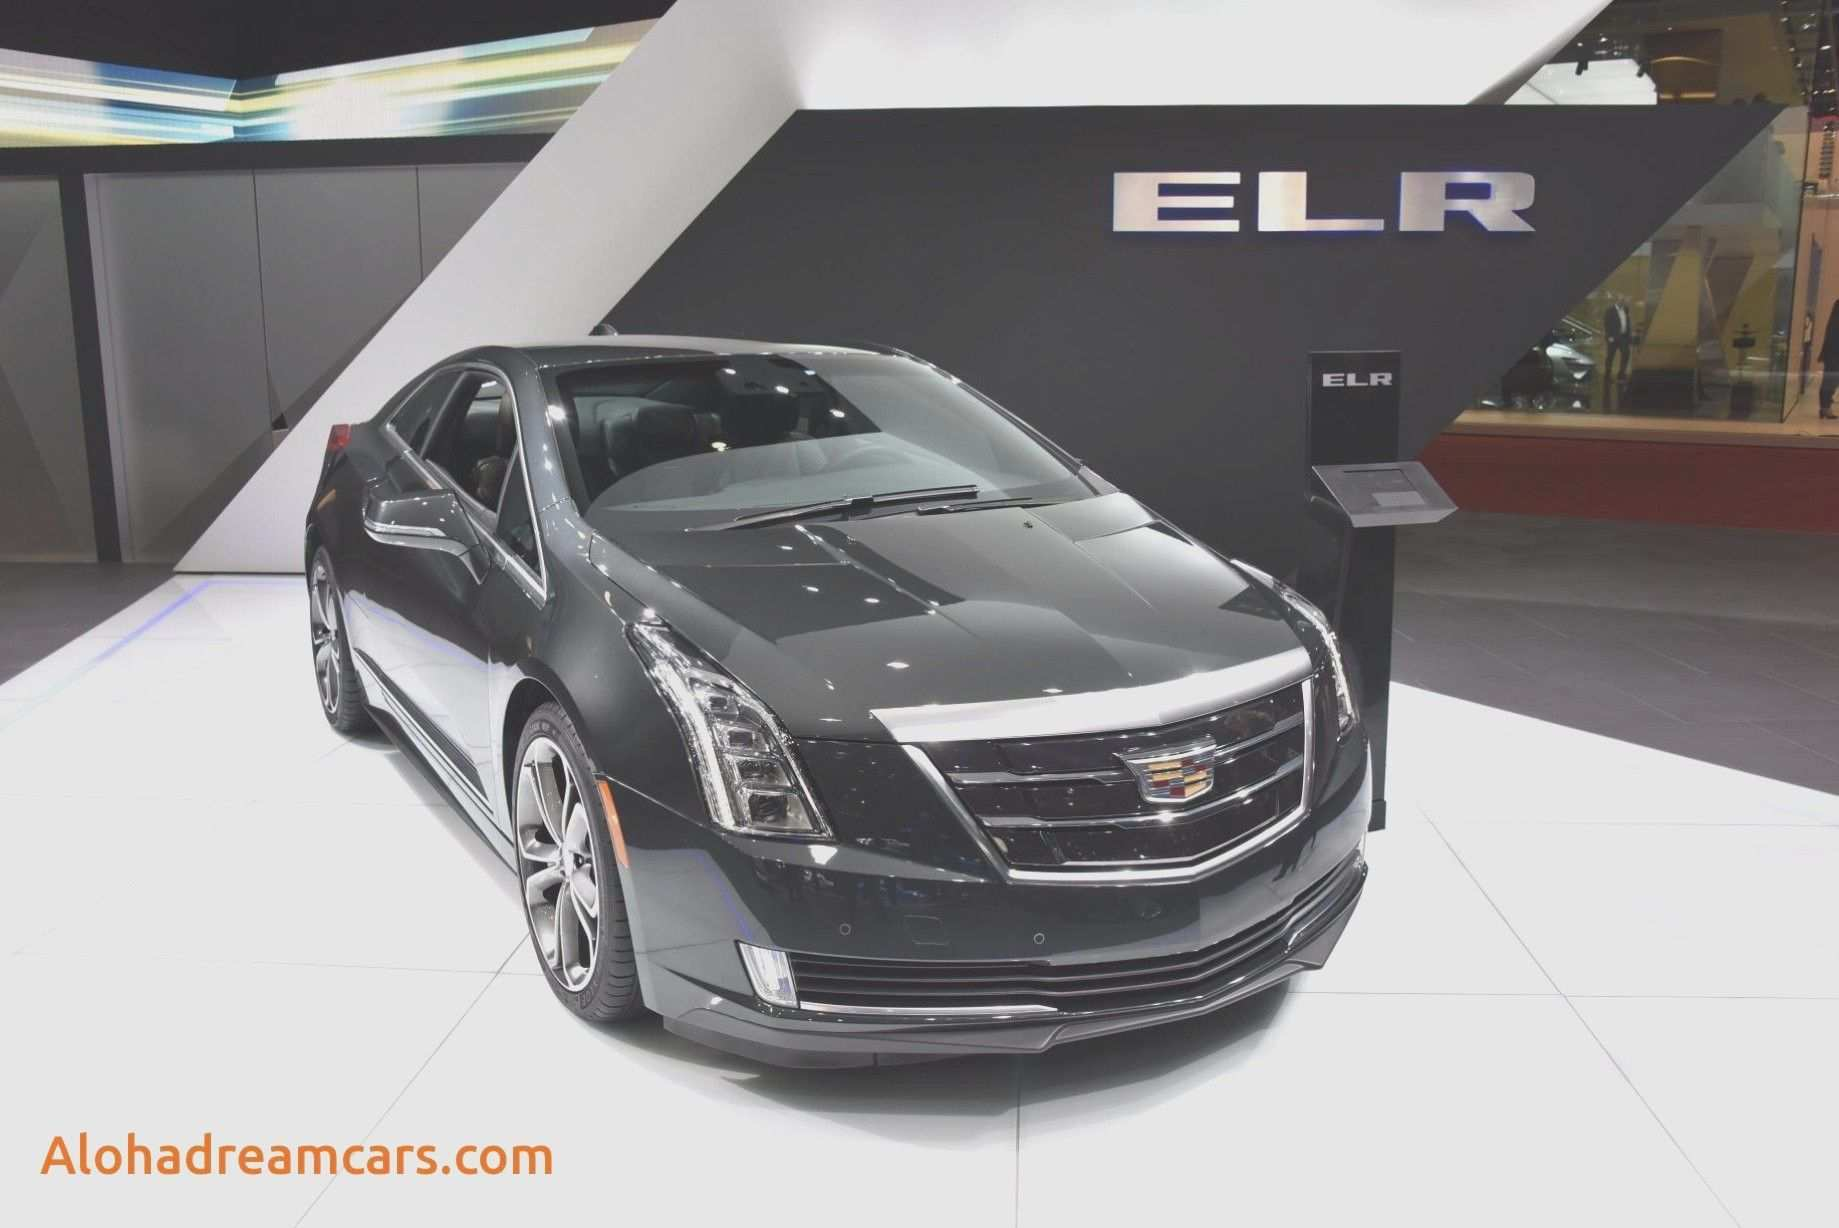 78 The Best 2020 Cadillac ELR New Concept